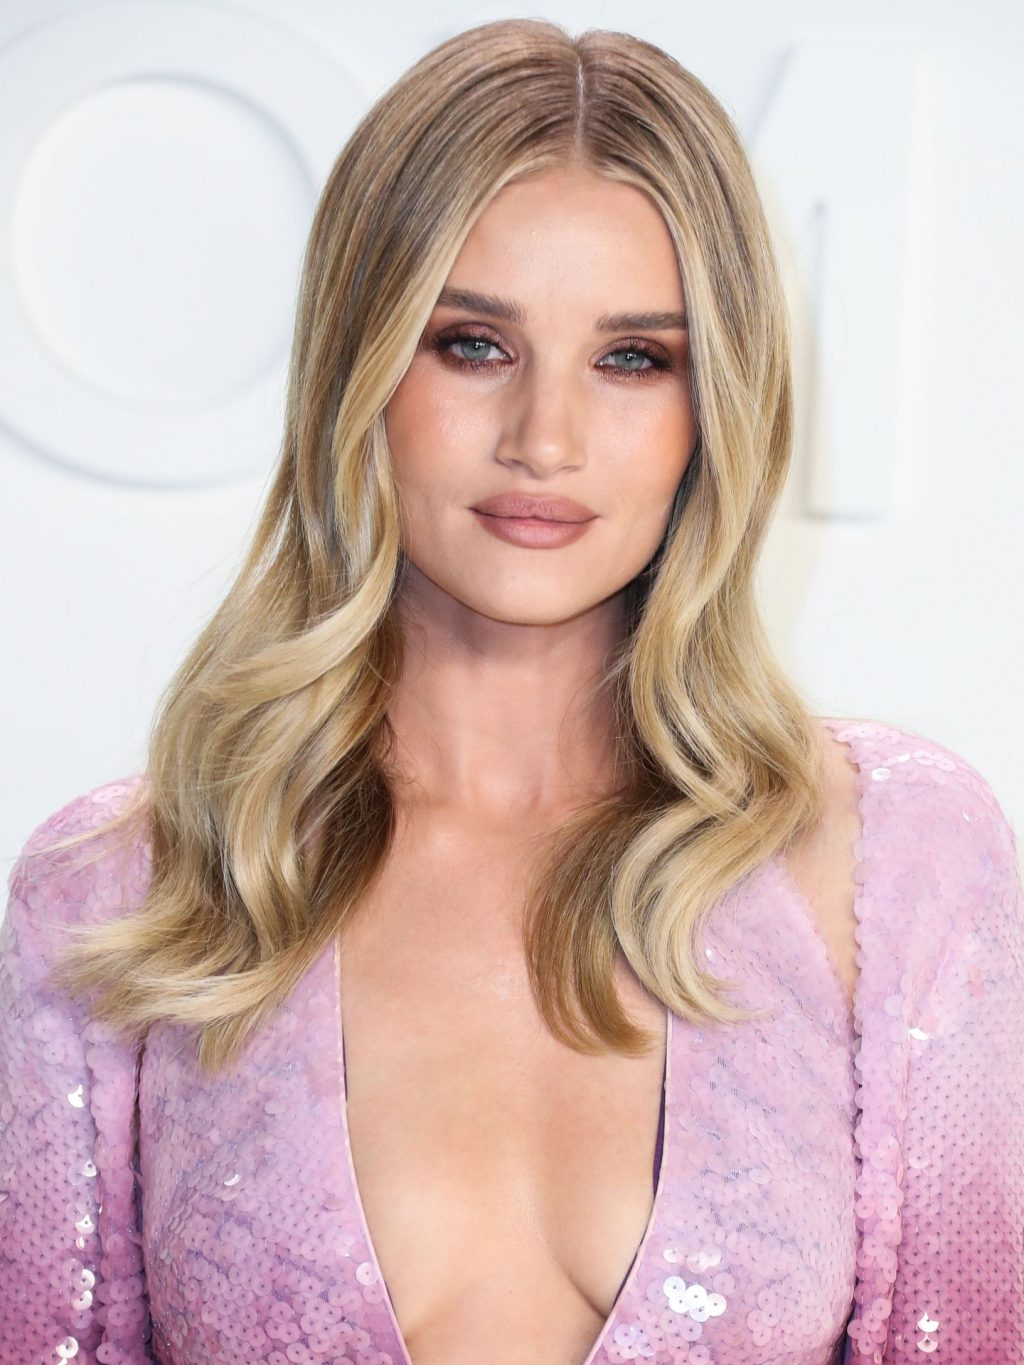 Rosie Huntington Whiteley Sexy The Fappening Blog 63 1024x1365 - Rosie Huntington-Whiteley Shows Her Cleavage at the Tom Ford Fashion Show (115 Photos)